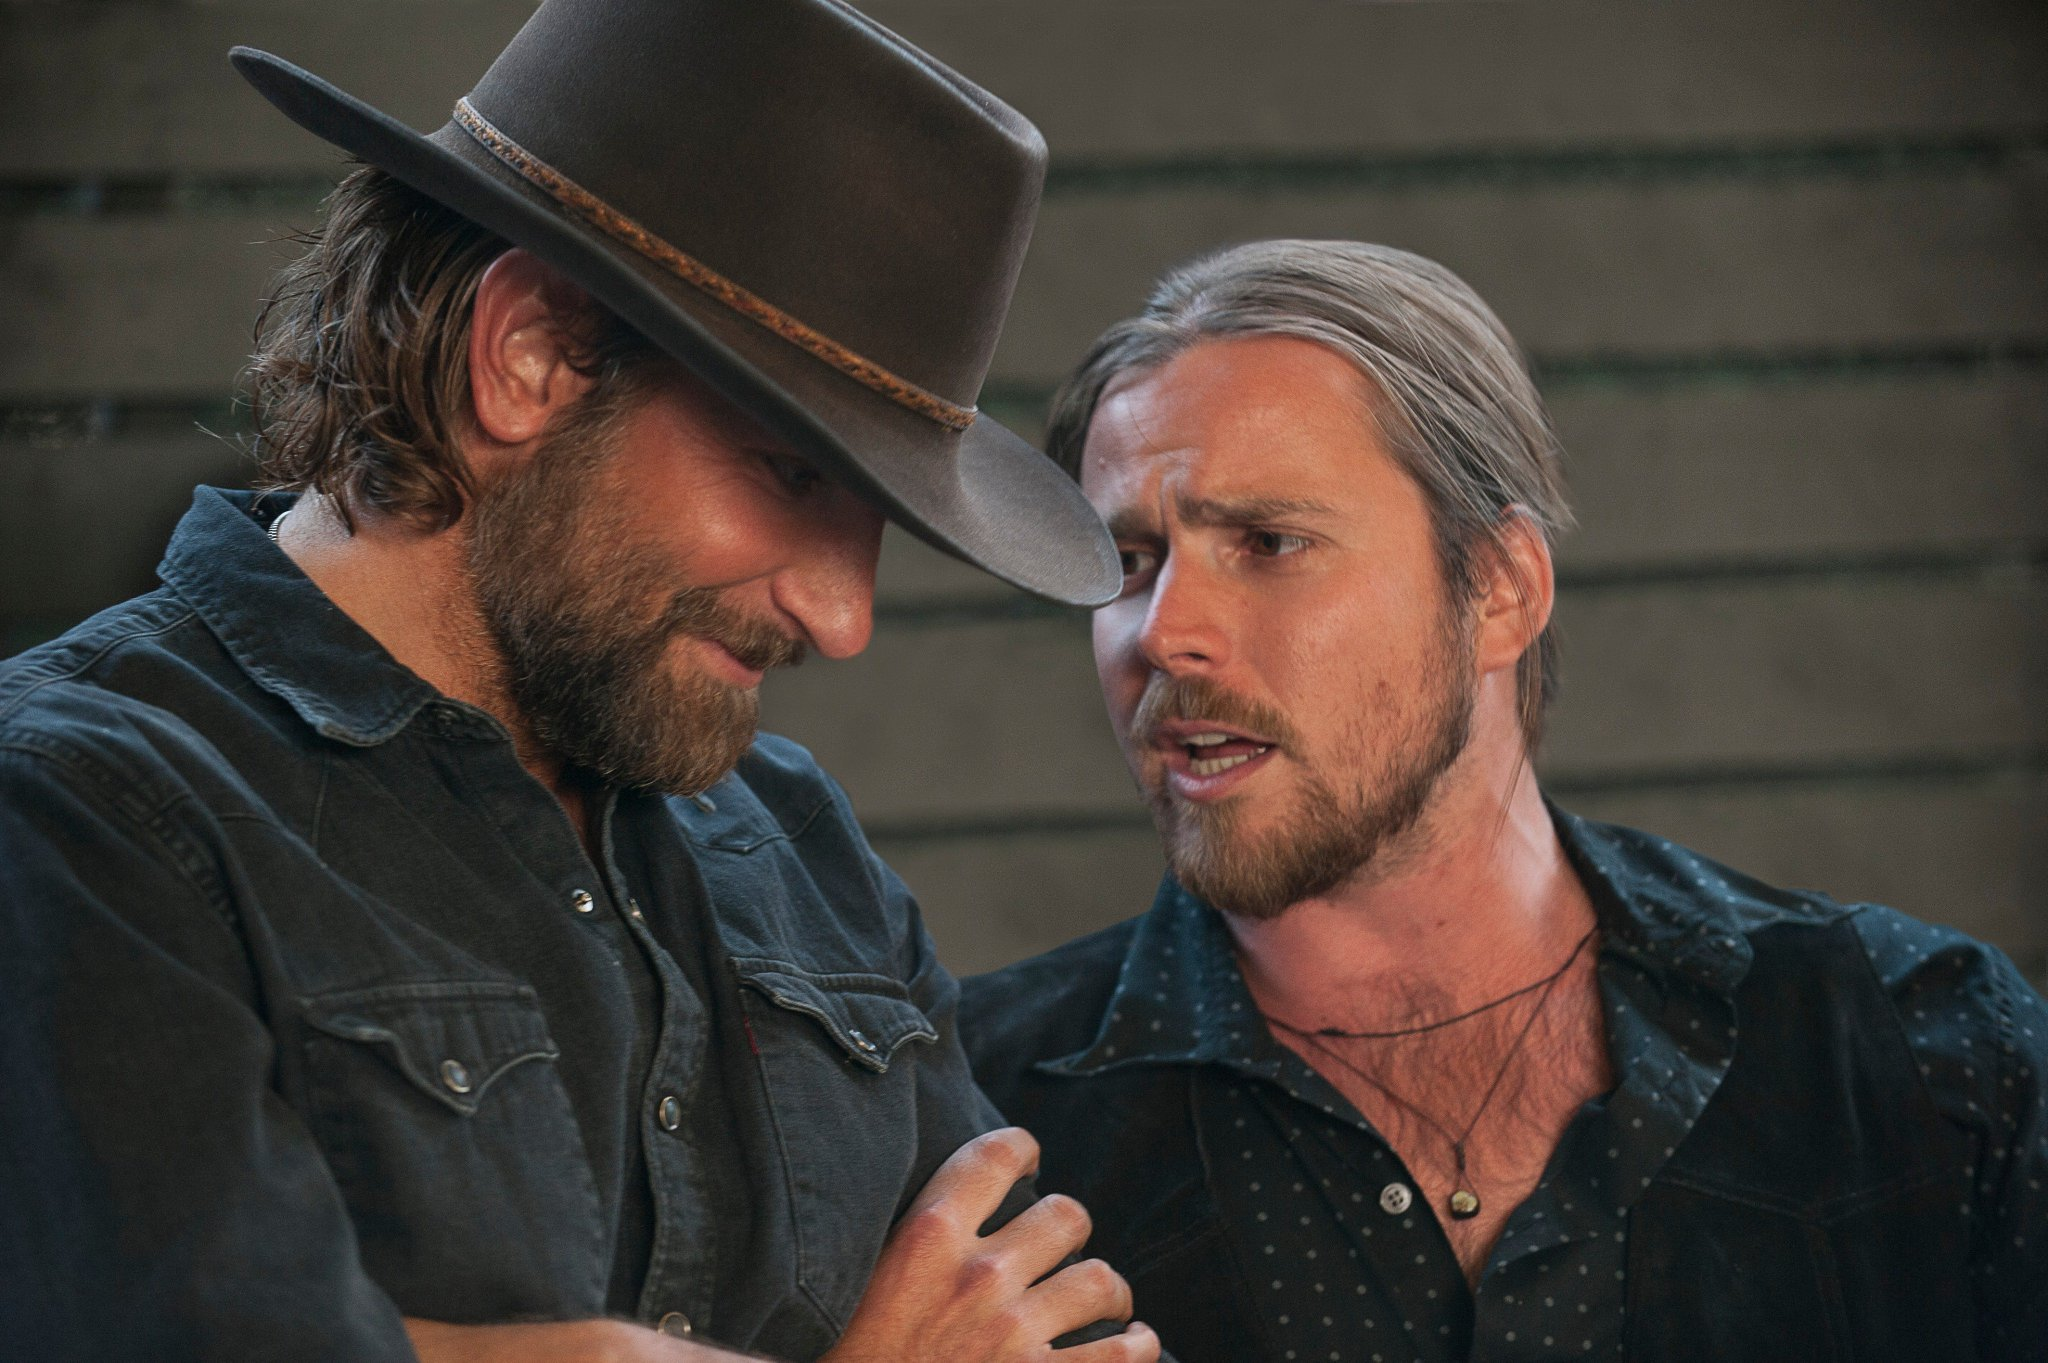 You can thank @lukasnelson for the incredible A Star Is Born soundtrack. https://t.co/Nj3R0OkIdi https://t.co/B0r1fP4khY